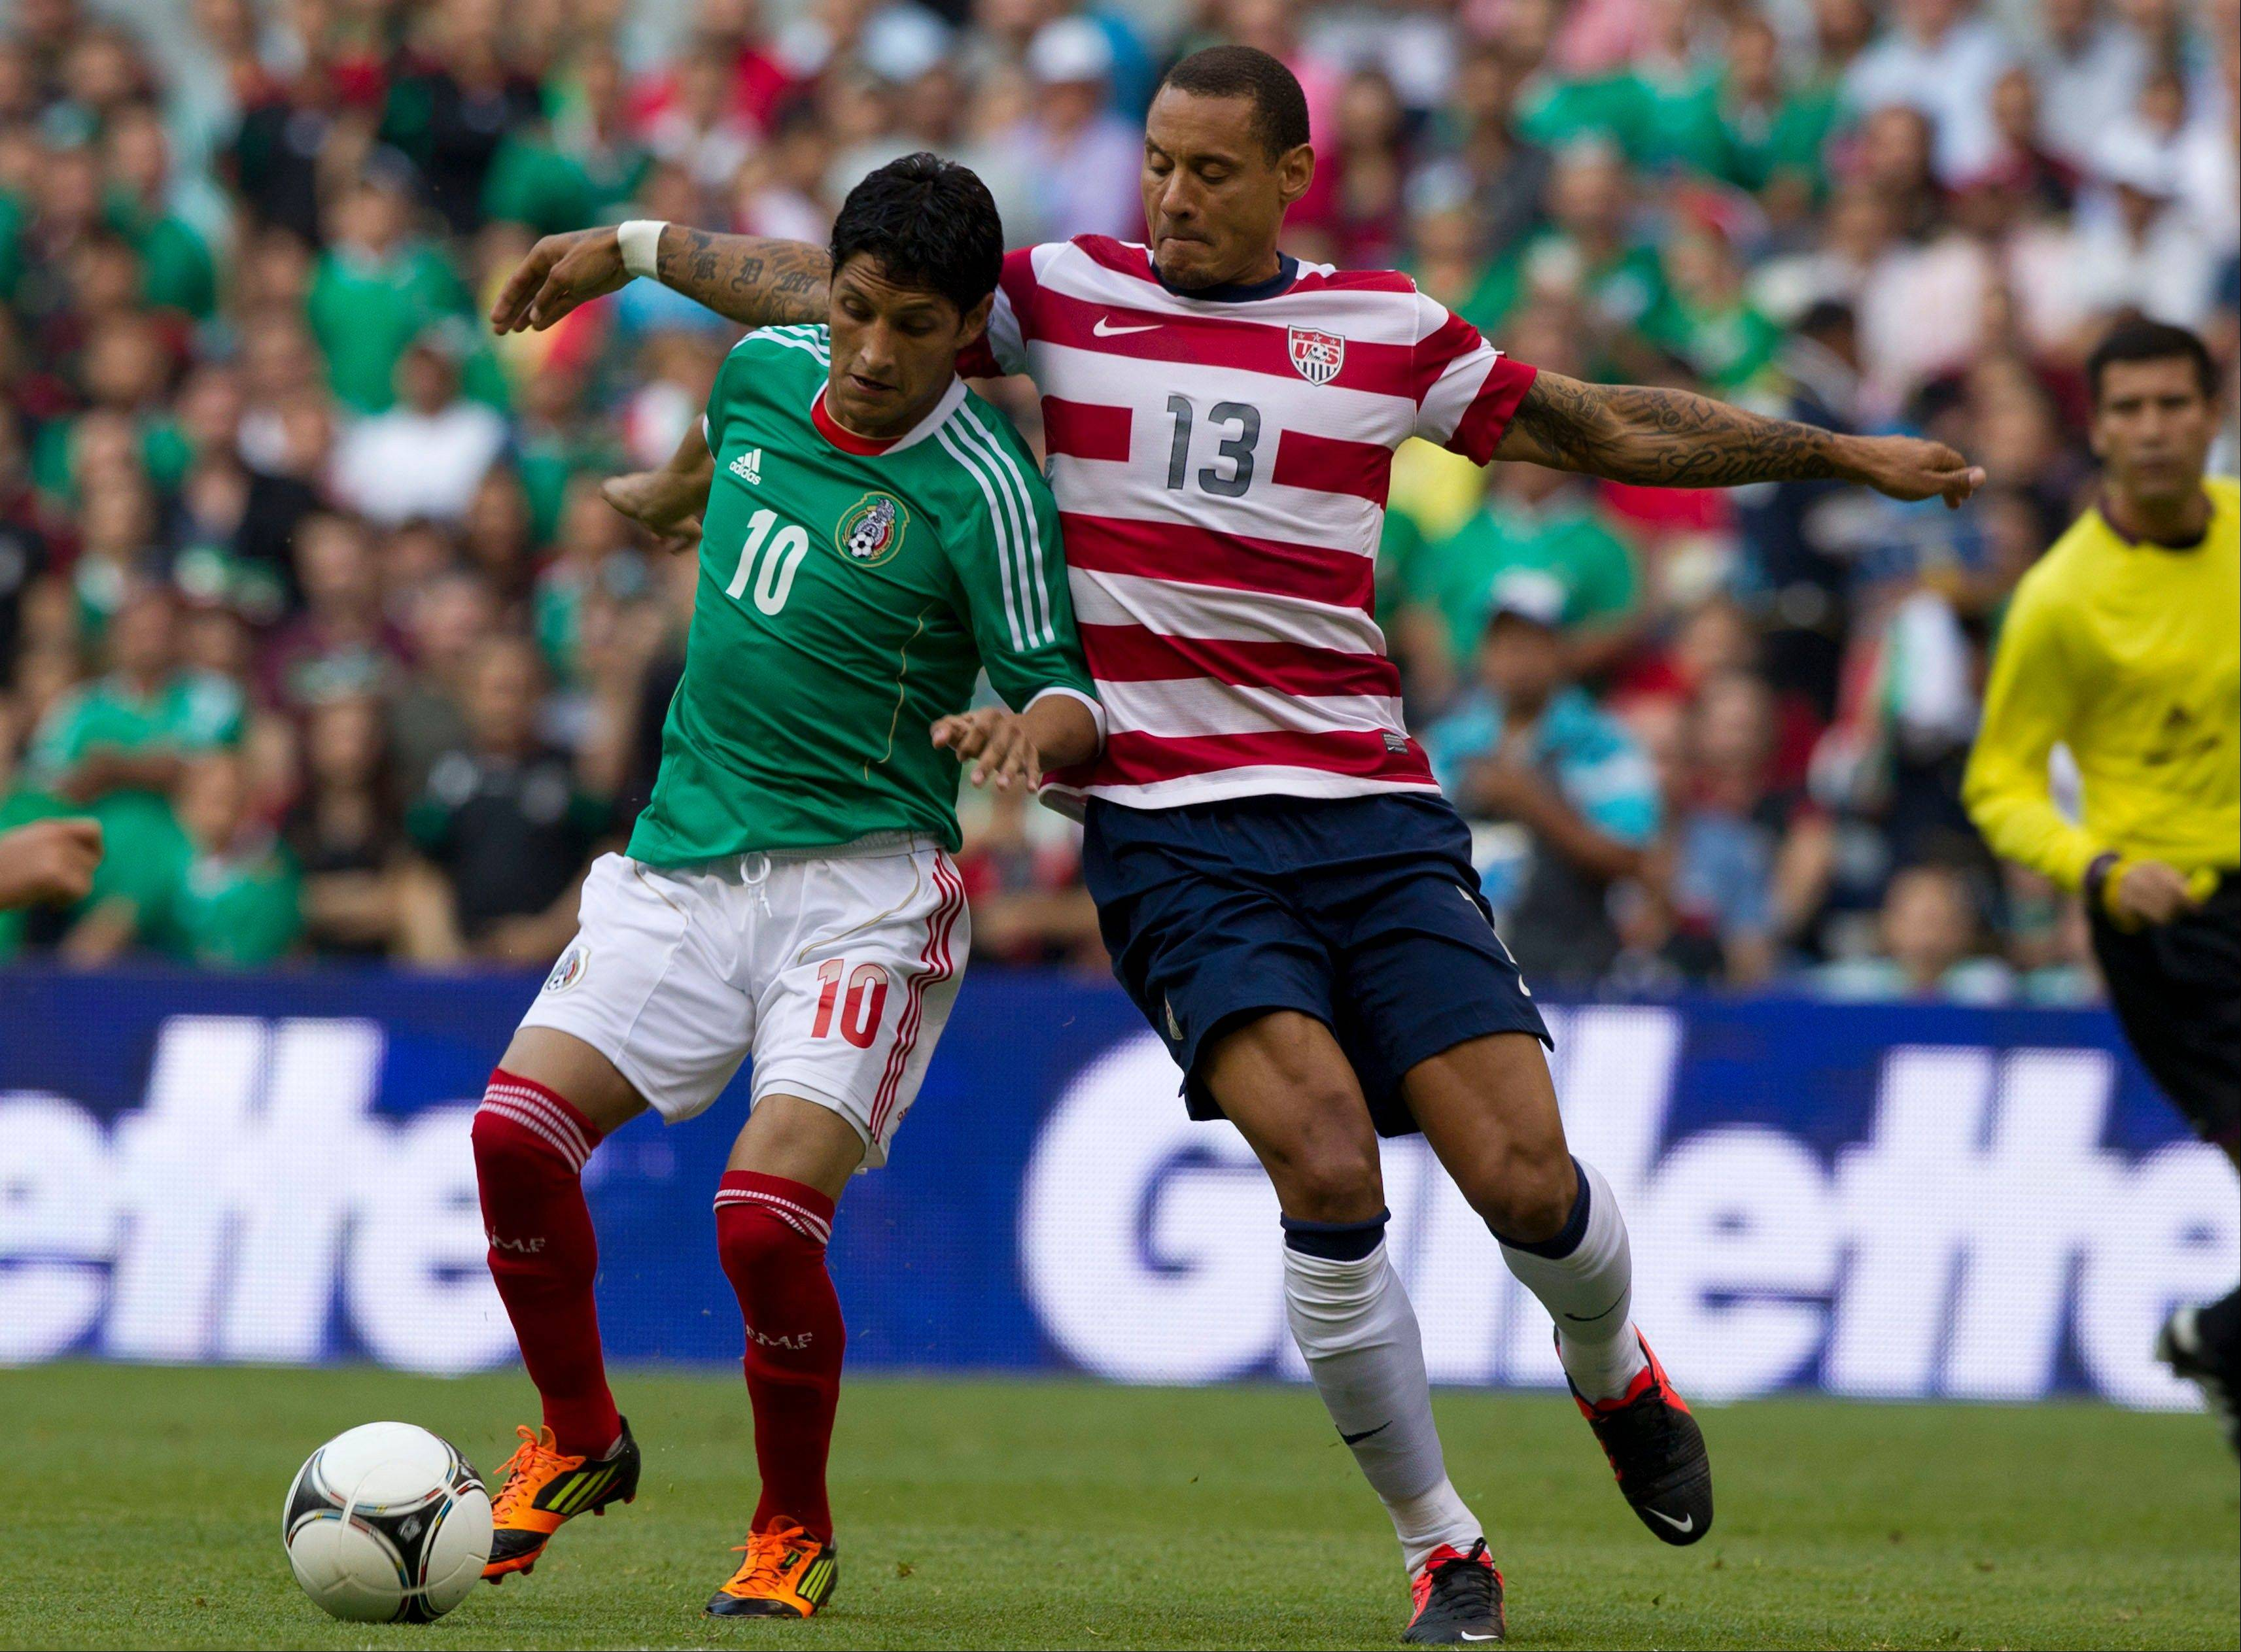 Mexico's Angel Reyna, left, and the United States' Jermaine Jones battle for the ball Wednesday during a friendly soccer match in Mexico City.